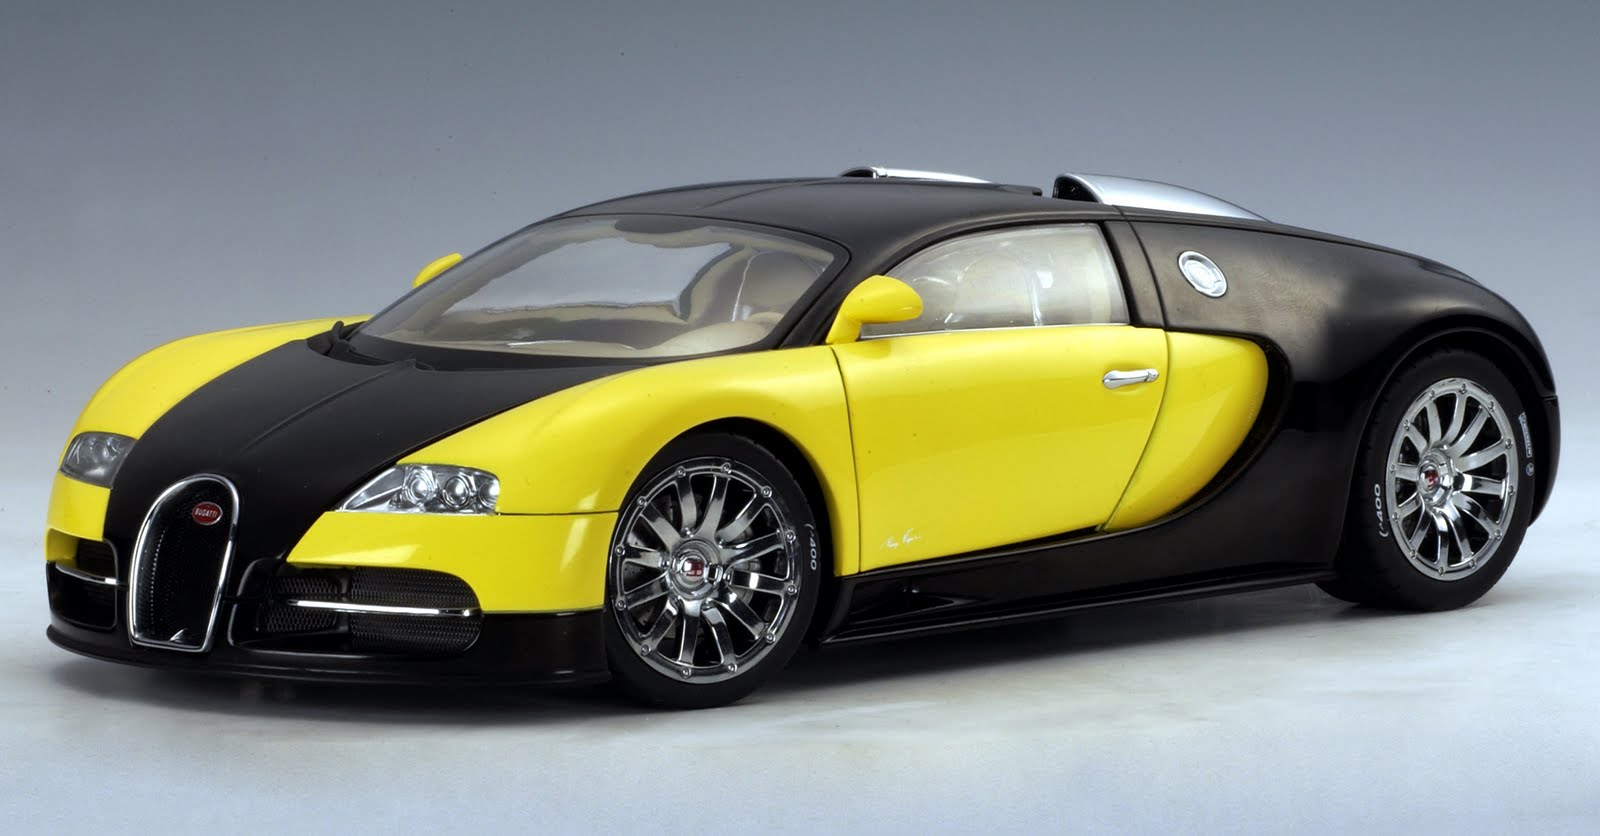 Colorful Bugatti Veyron Interior And Exterior Wallpapers Latest Celebrity Fashion